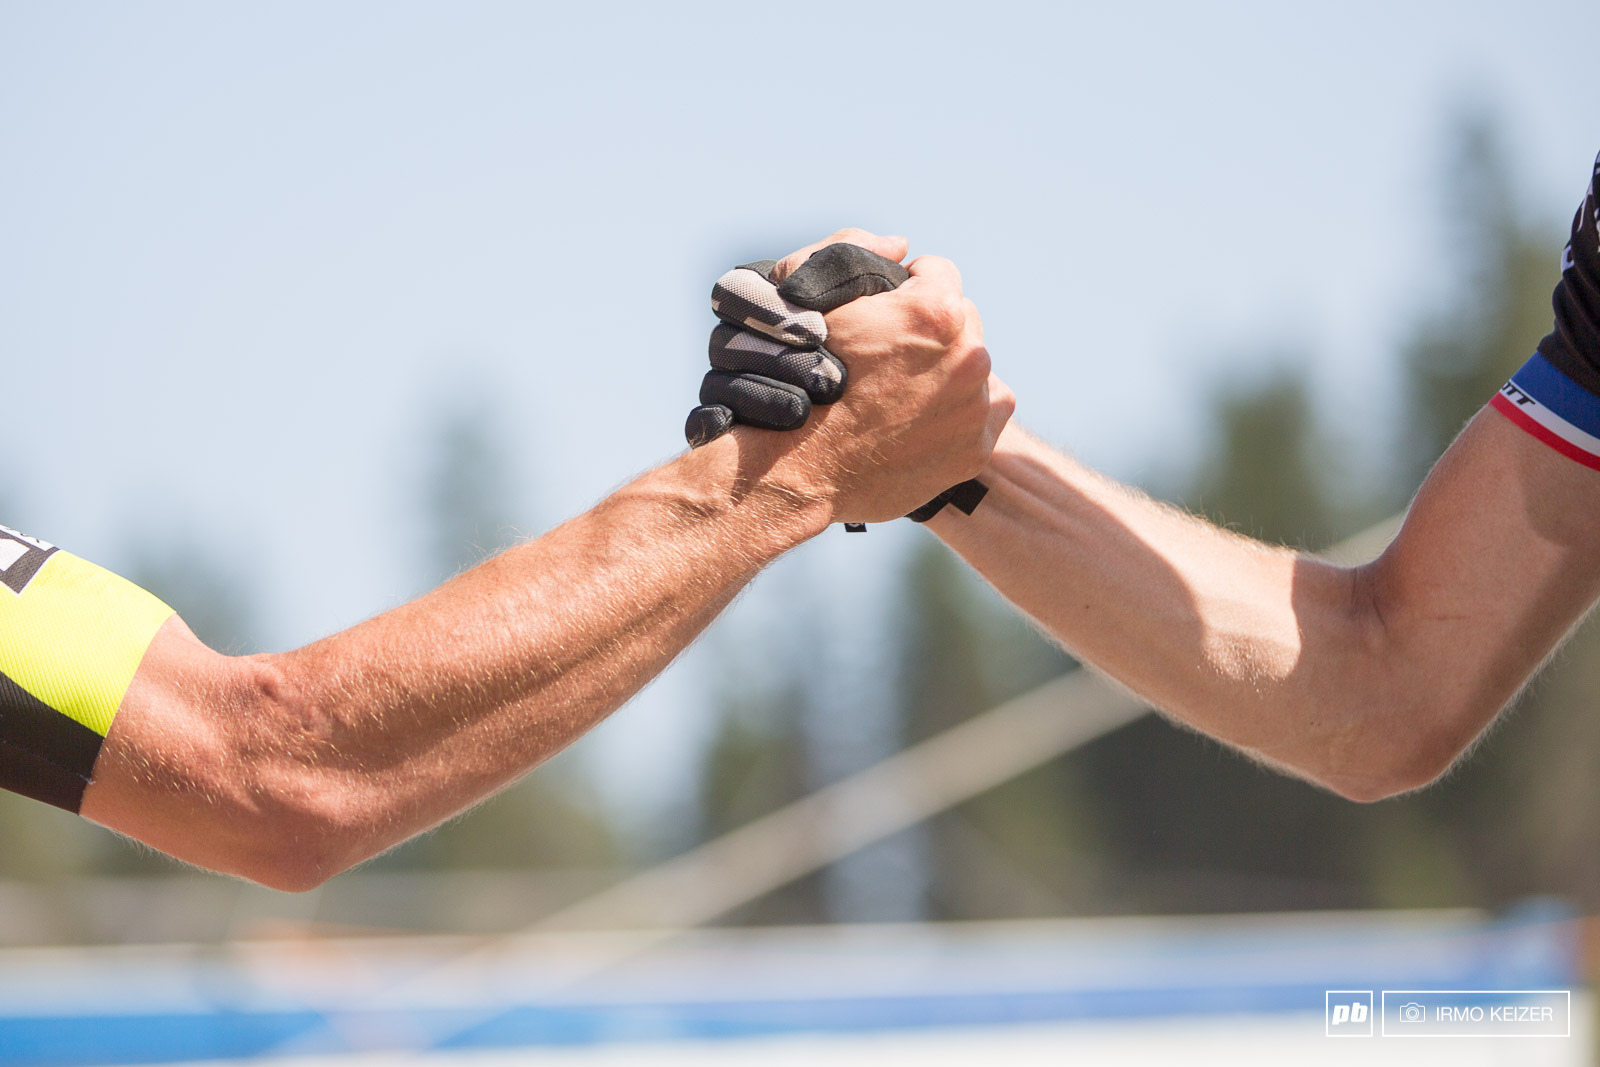 Titouan Carod and Lars Forster congratulate each other after the race.